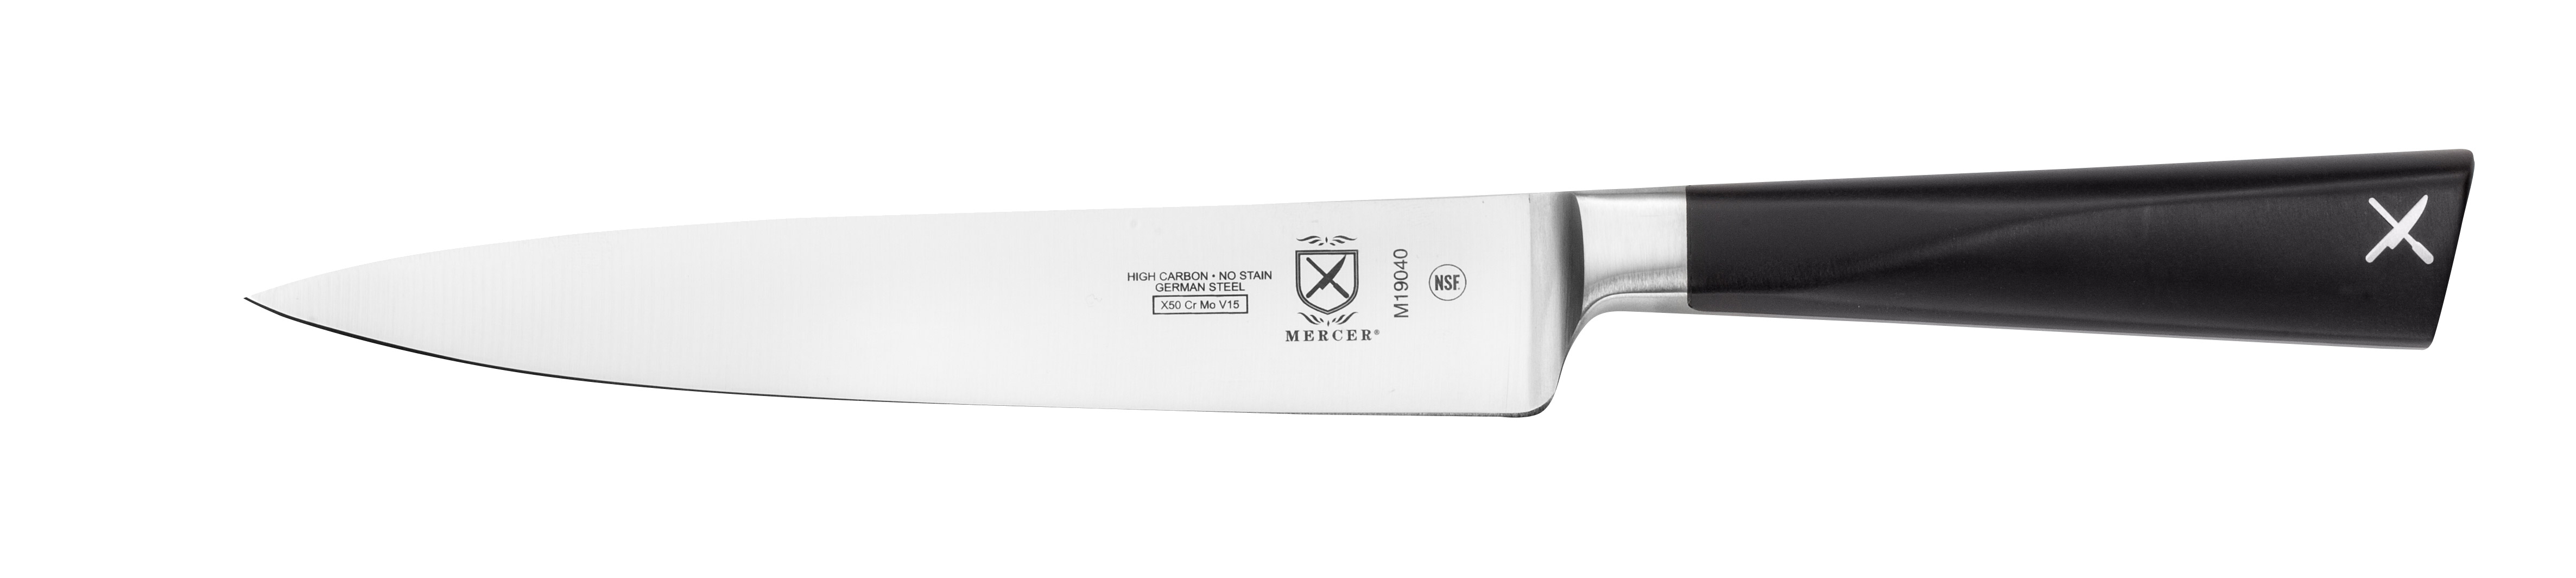 Mercer Culinary M19040 knife, fillet